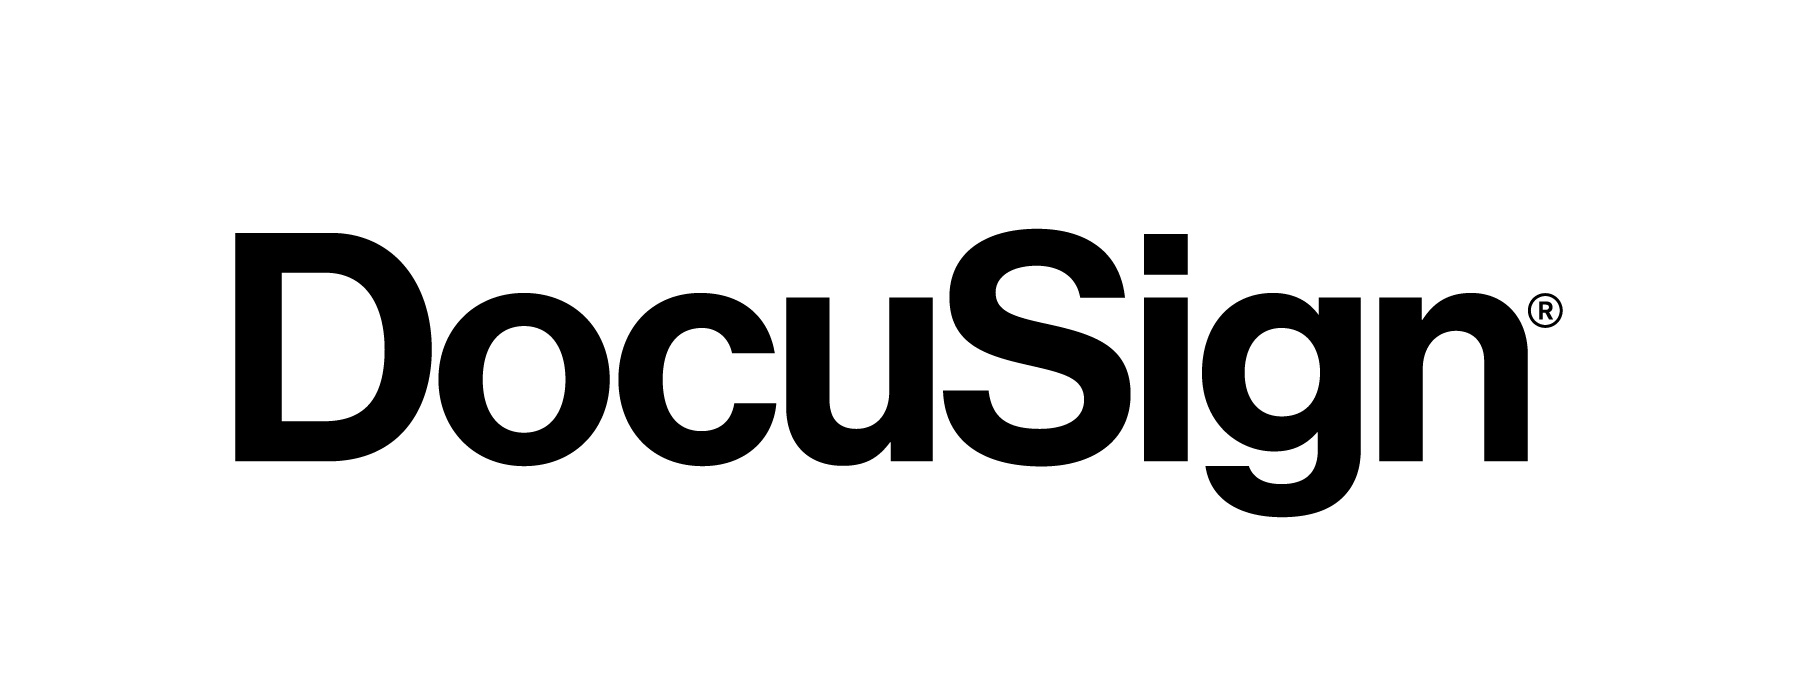 DocuSign's logo